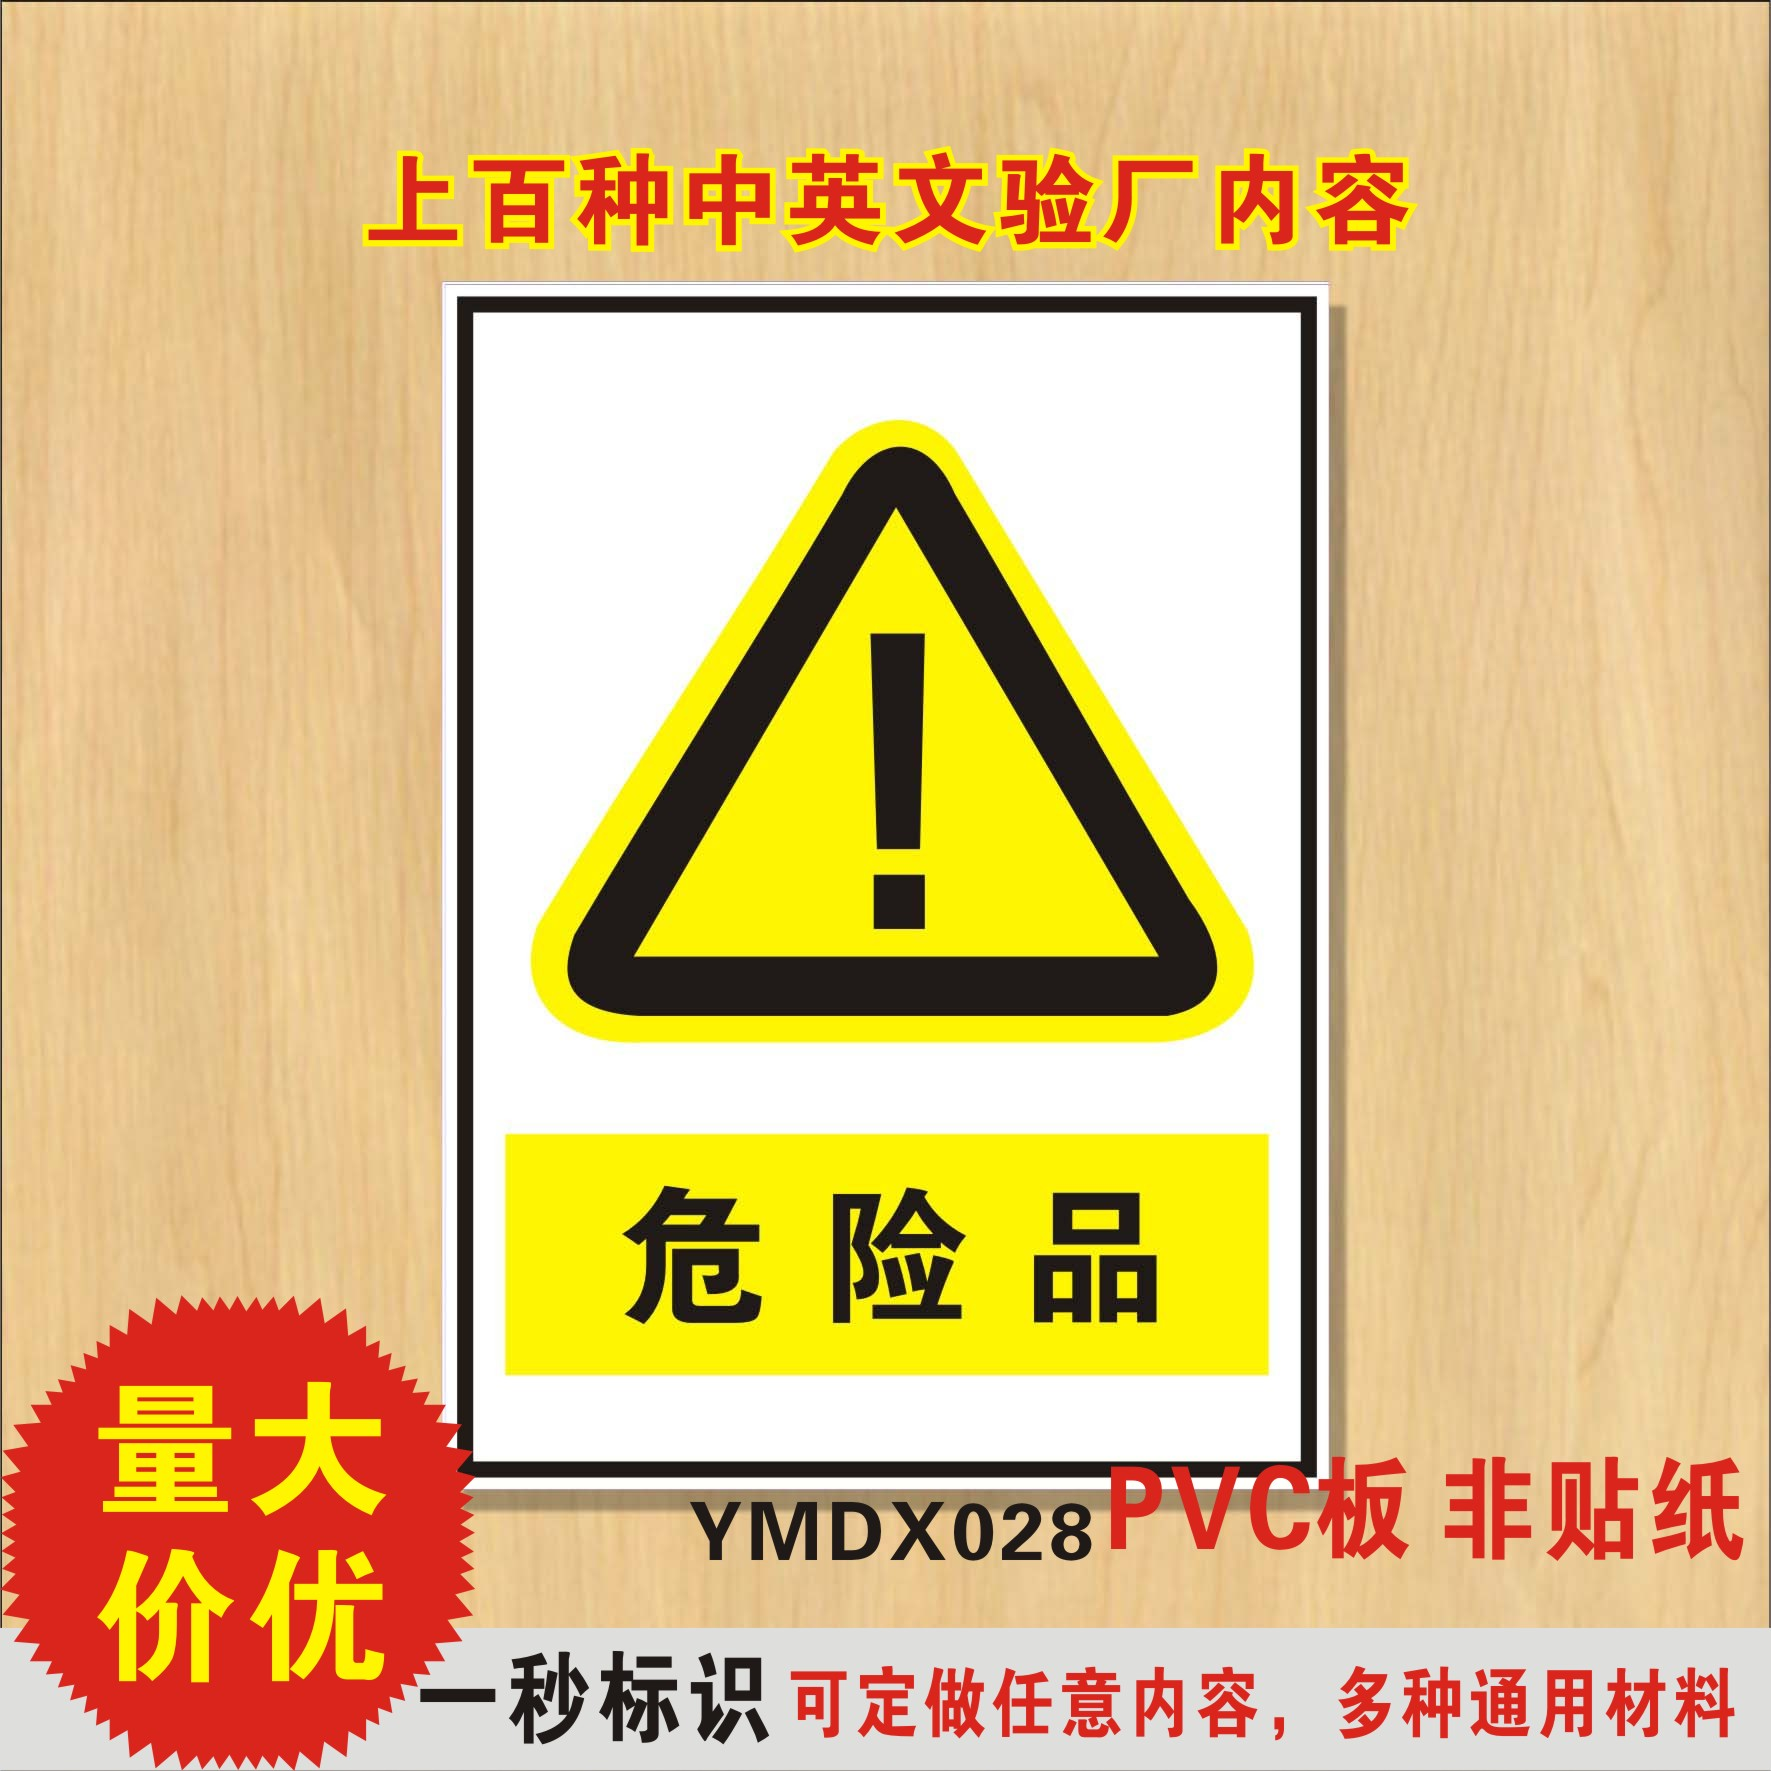 Dangerous goods safety warning signs pvc safety signs warning signs custom signs nameplate label stickers security